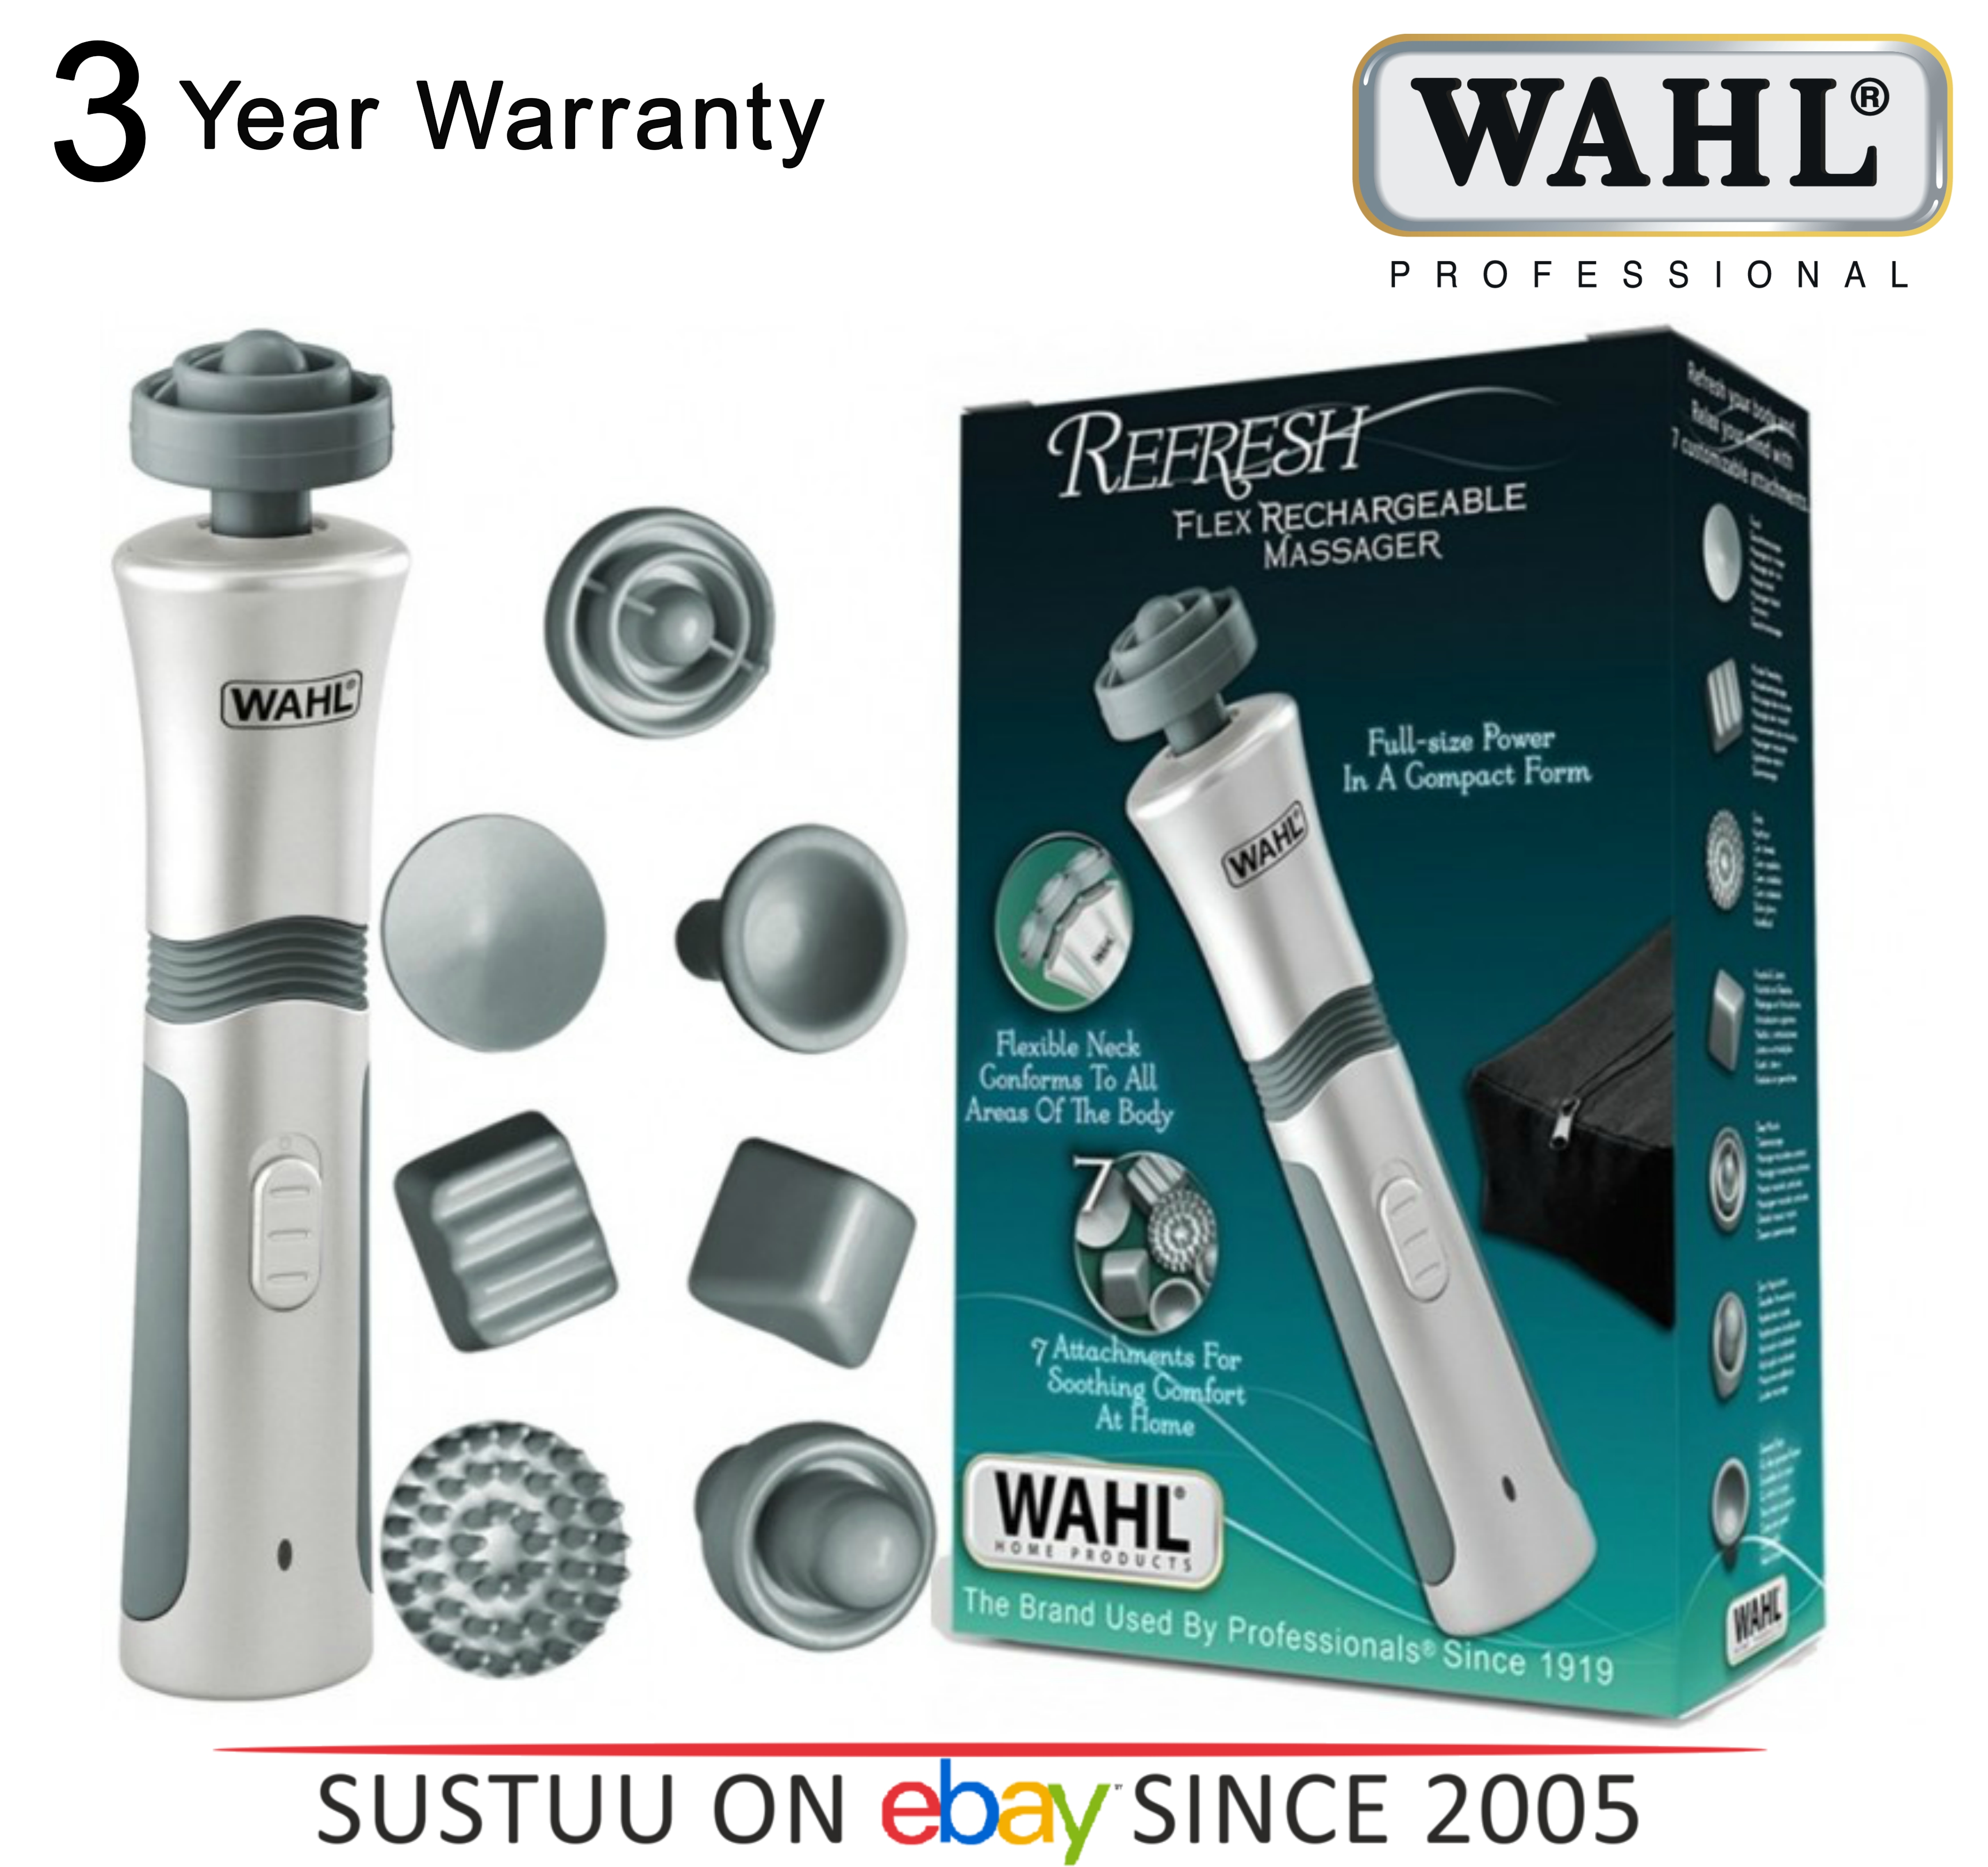 Wahl Flex Rechargeable Hand Helf Full Body Massager with 7 Attachments 4294-027